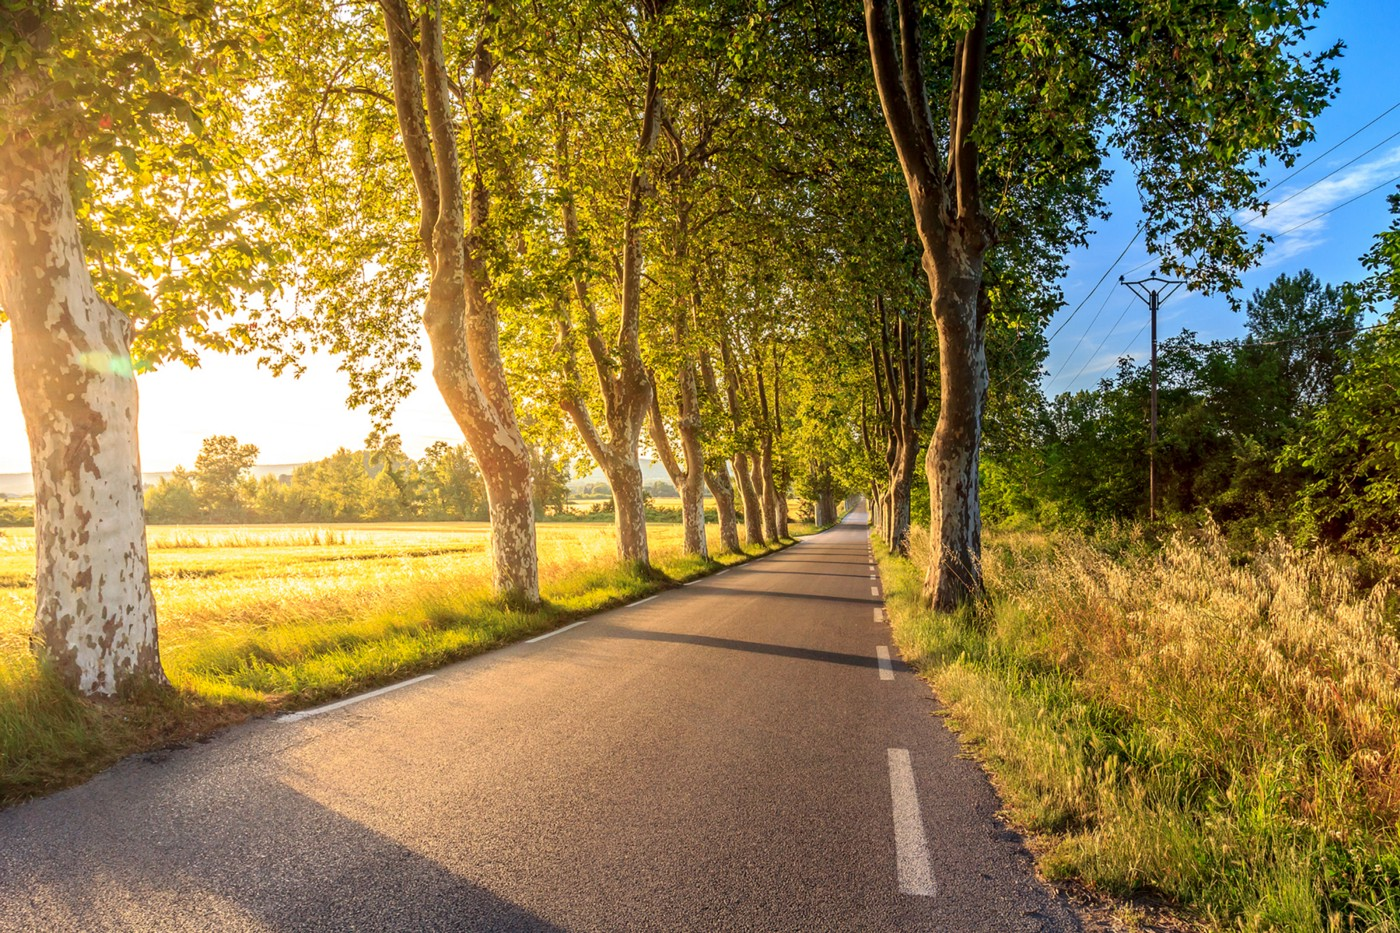 Late summer day with black paved road surrounded by tall trees. Bright blue sky peeks out behind the trees.